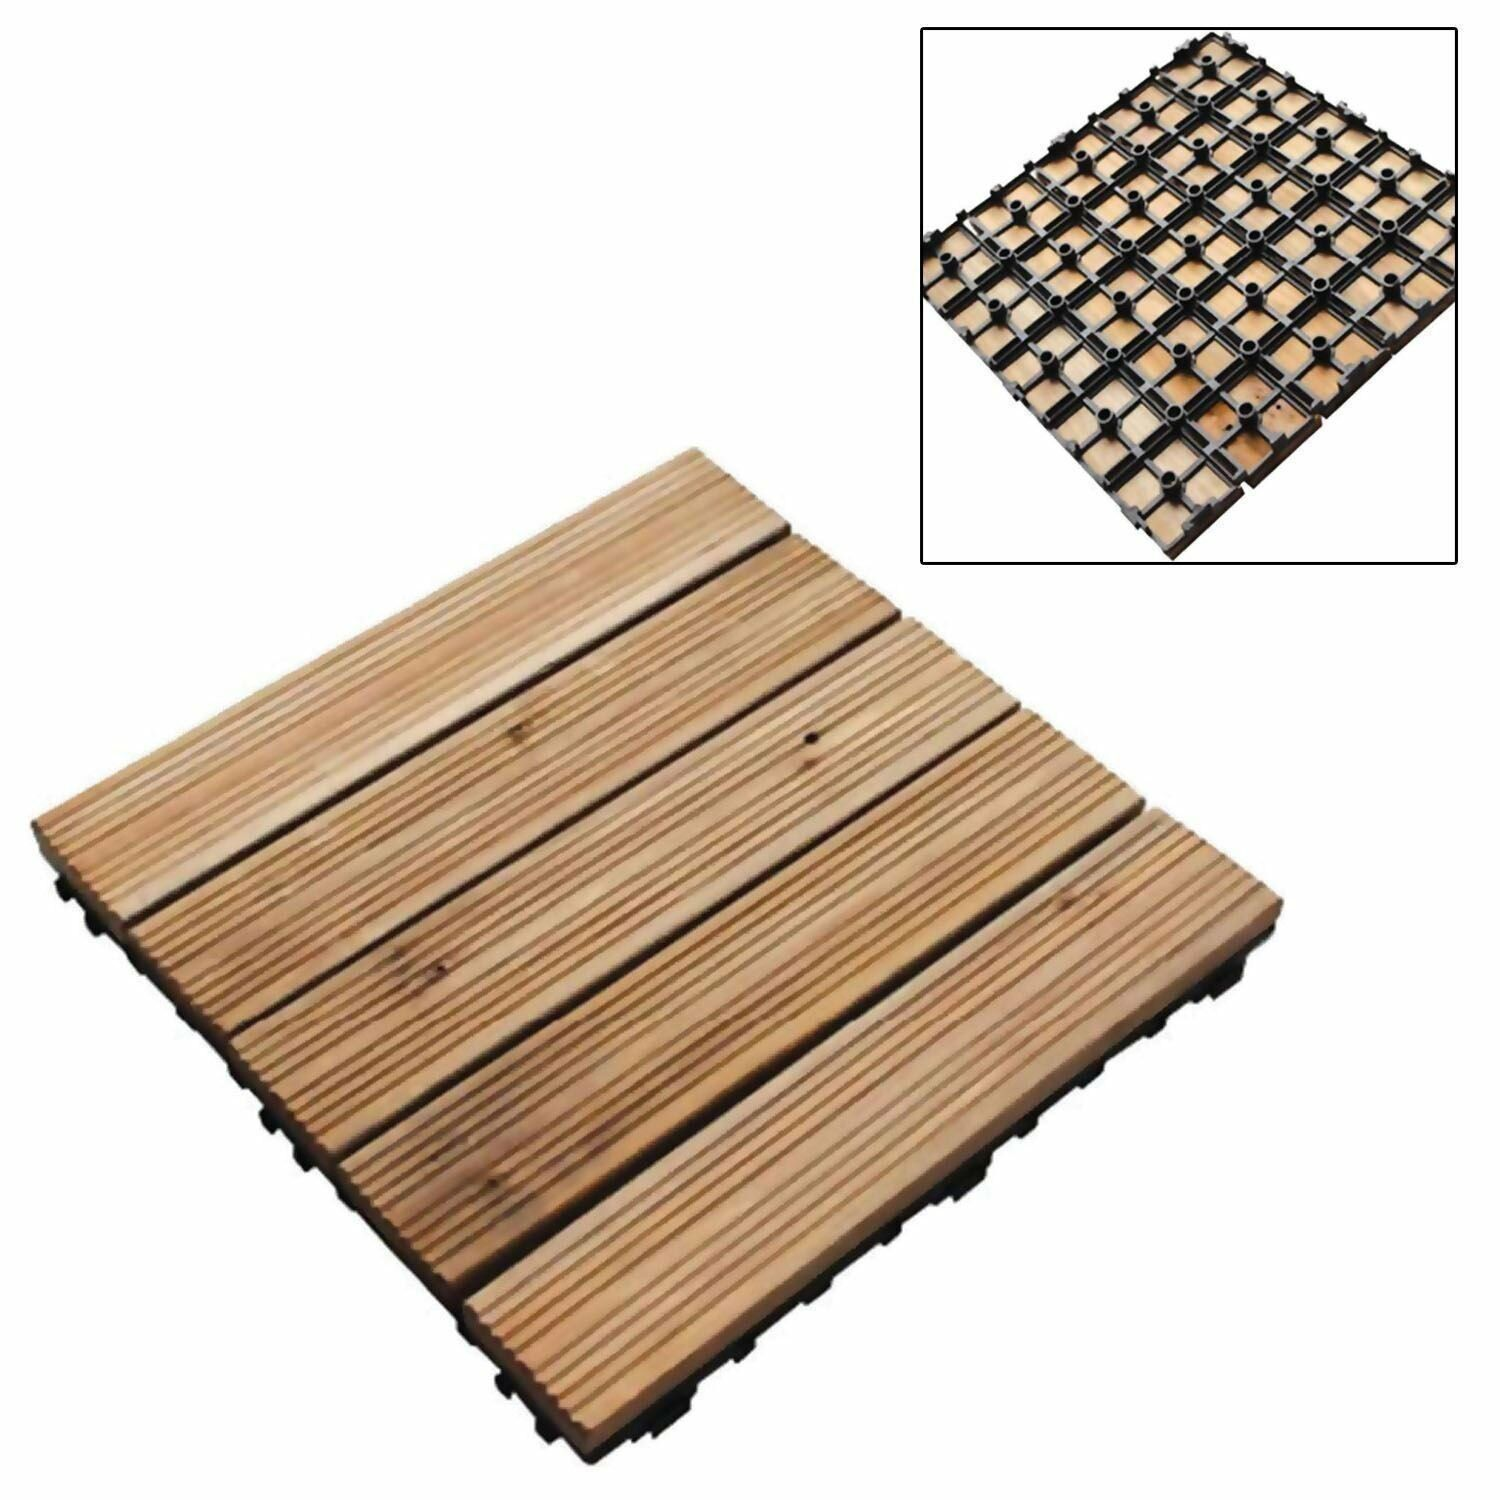 Anti slip wooden garden patio interlocking decking for Garden decking non slip